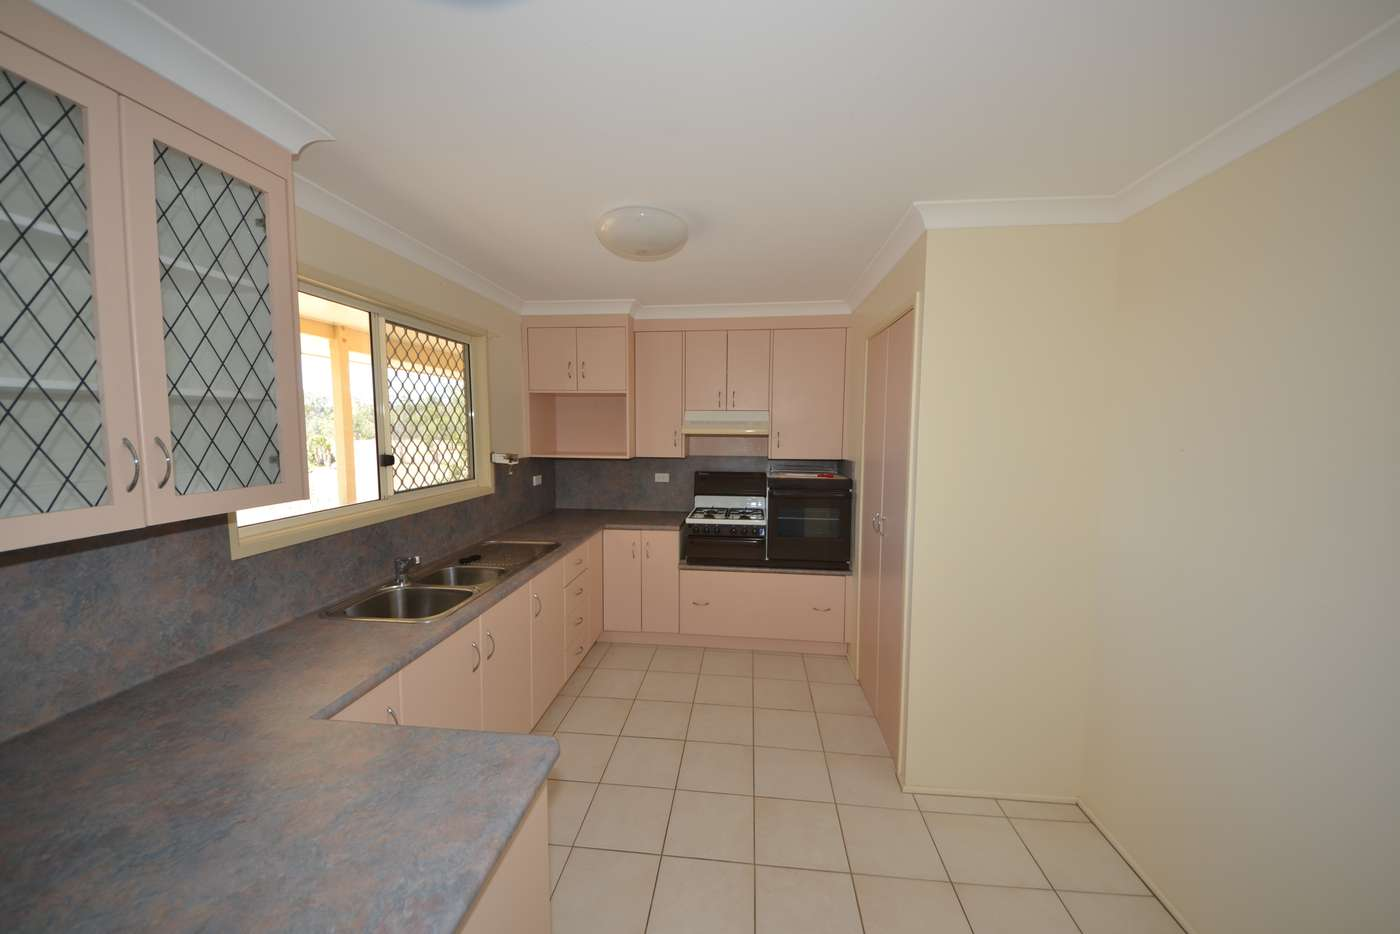 Seventh view of Homely house listing, 13 Gum Tree Ave, Bouldercombe QLD 4702